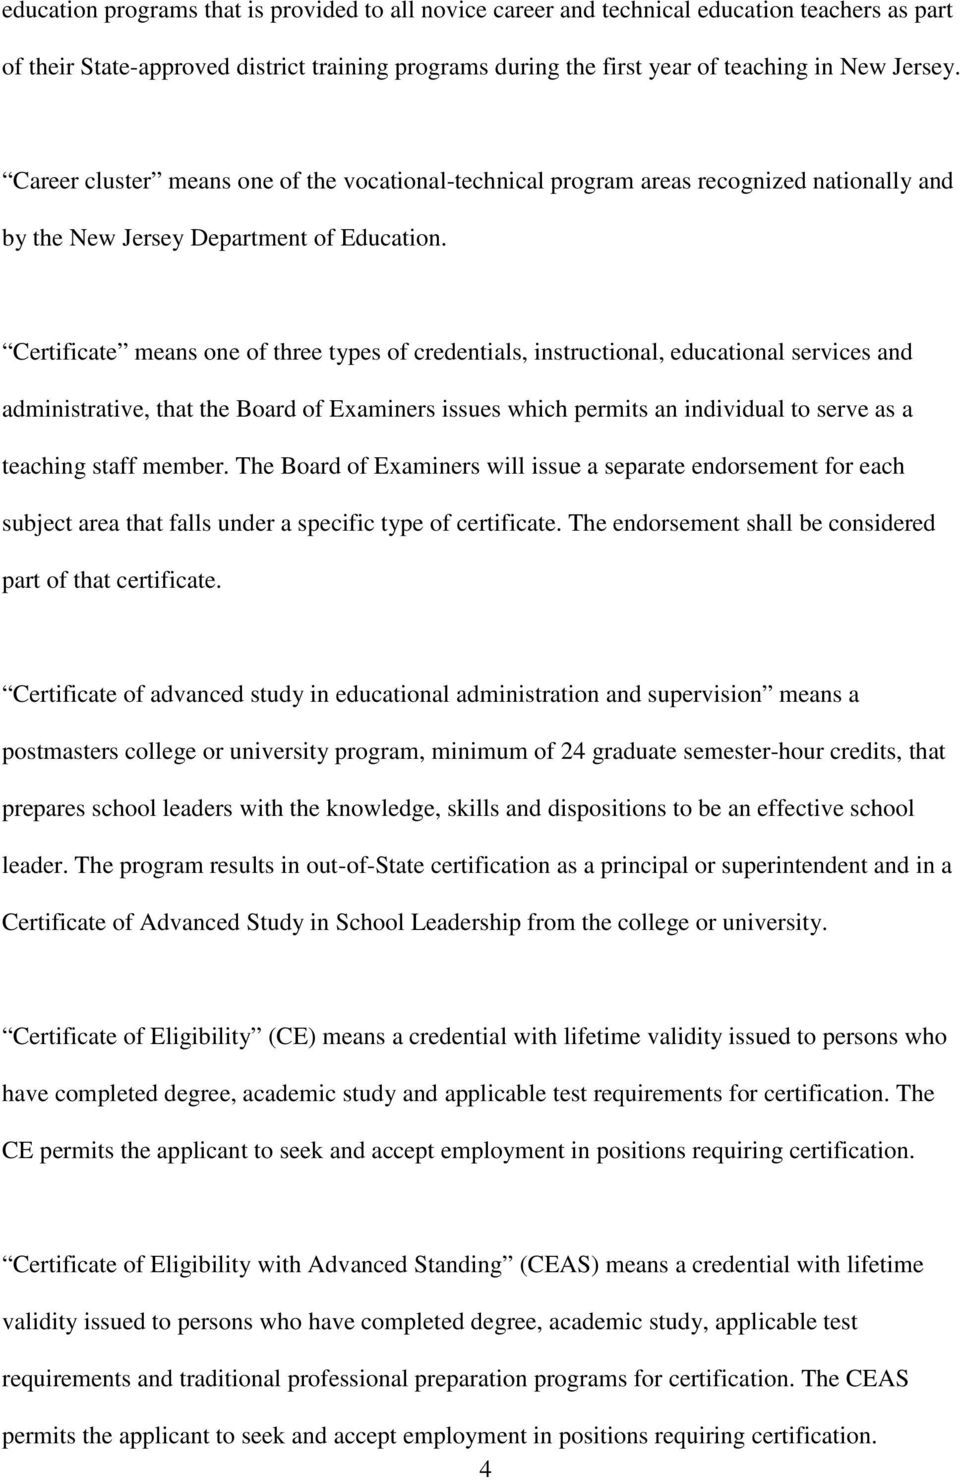 Certificate means one of three types of credentials, instructional, educational services and administrative, that the Board of Examiners issues which permits an individual to serve as a teaching